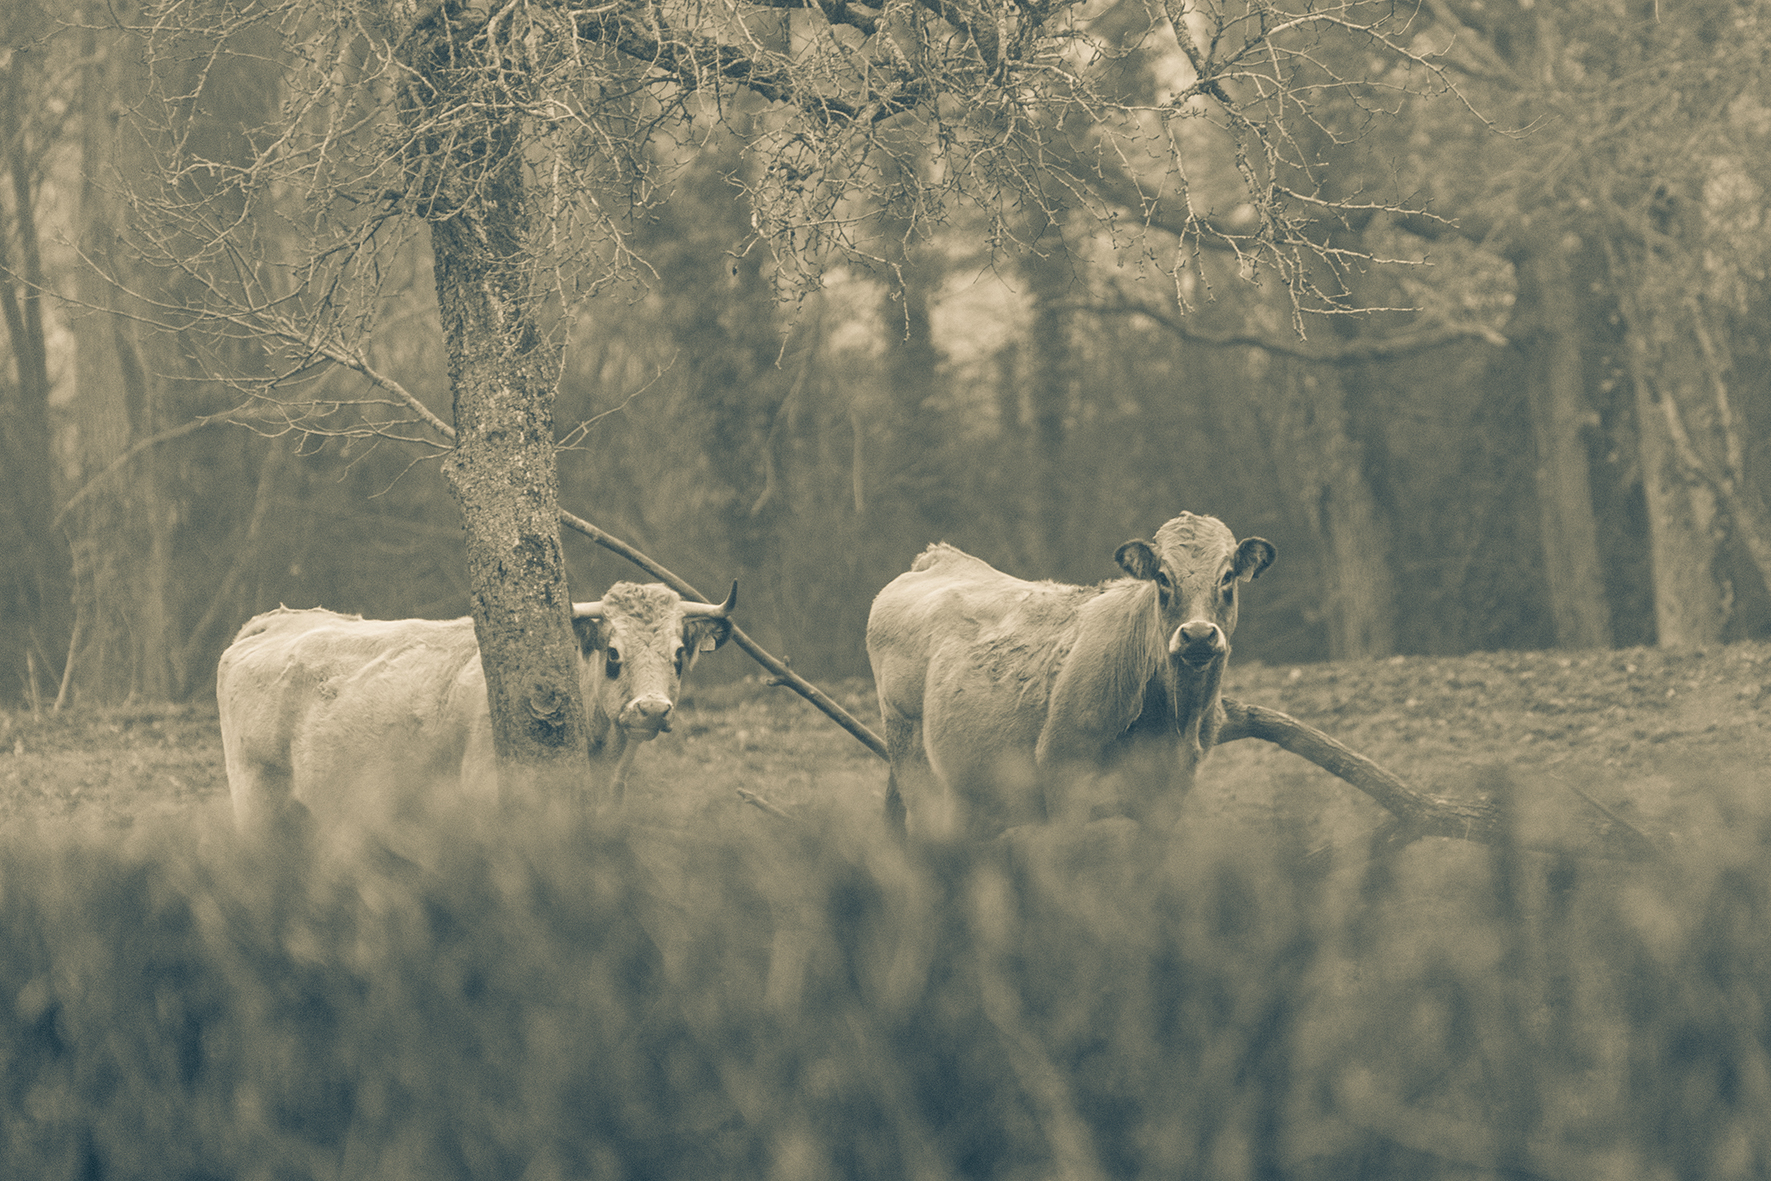 Photographe : Taking the country roads n°4